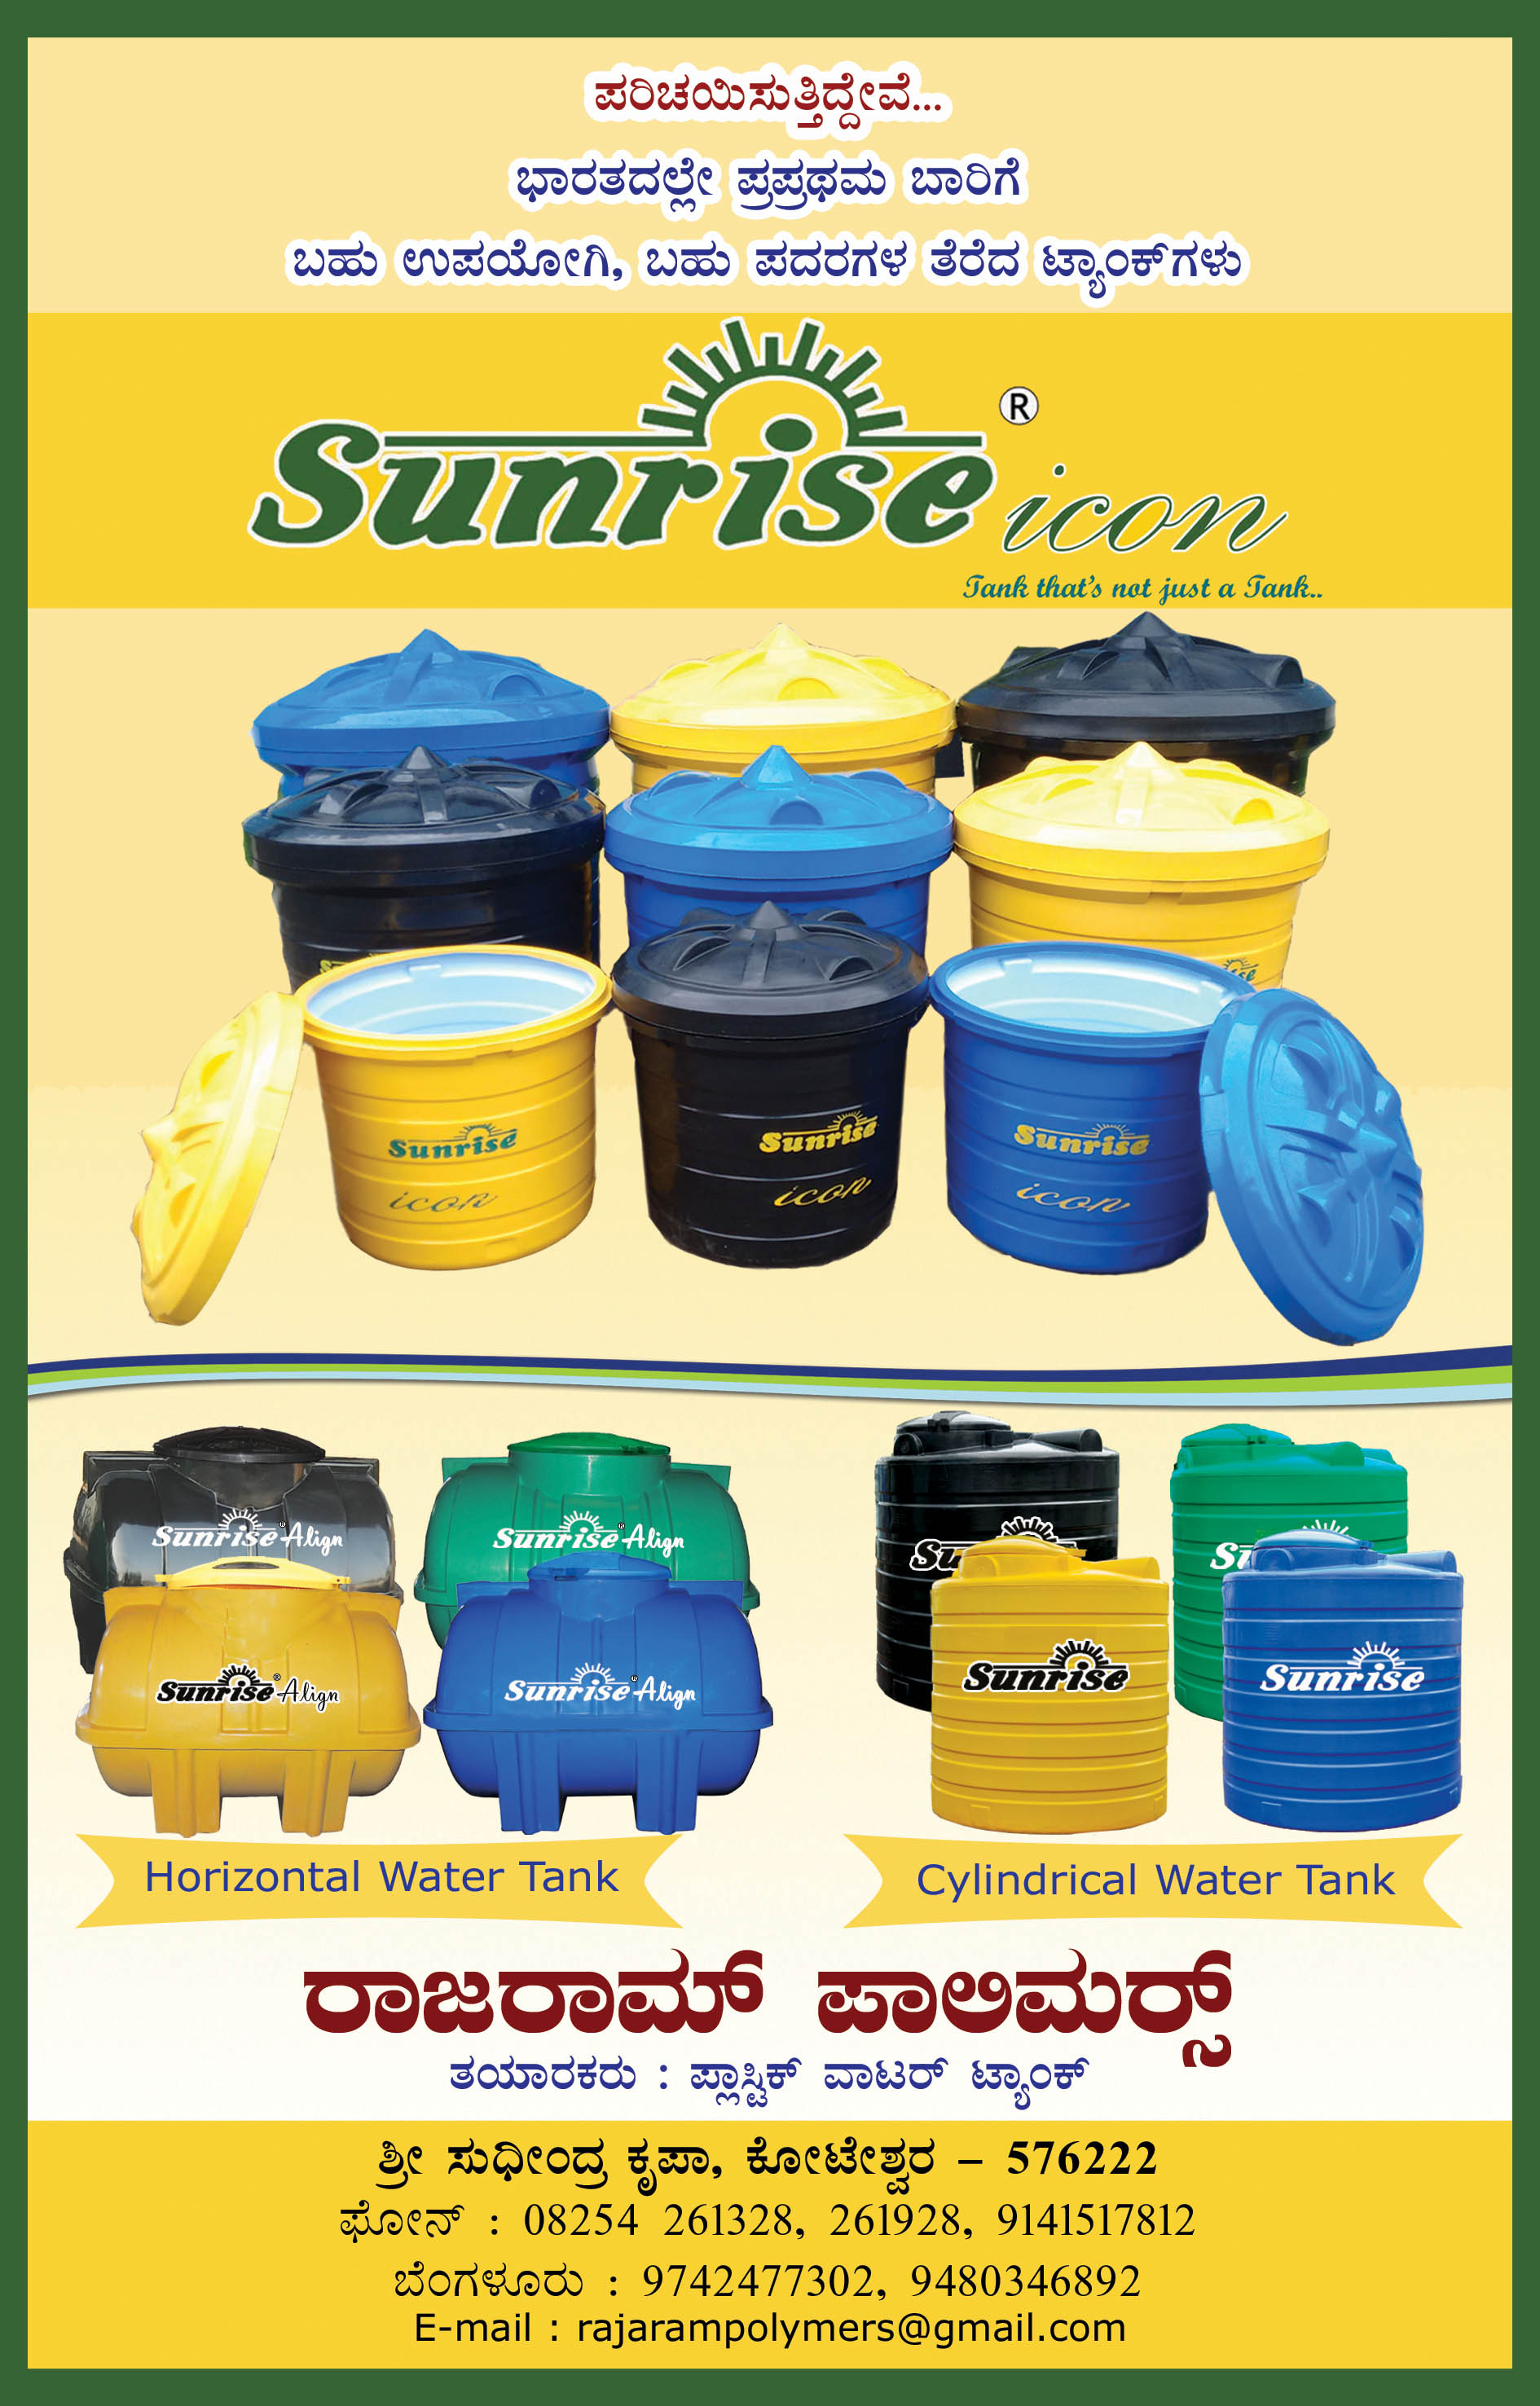 Rajaram Polymers – Sunrise icon multi use tanks